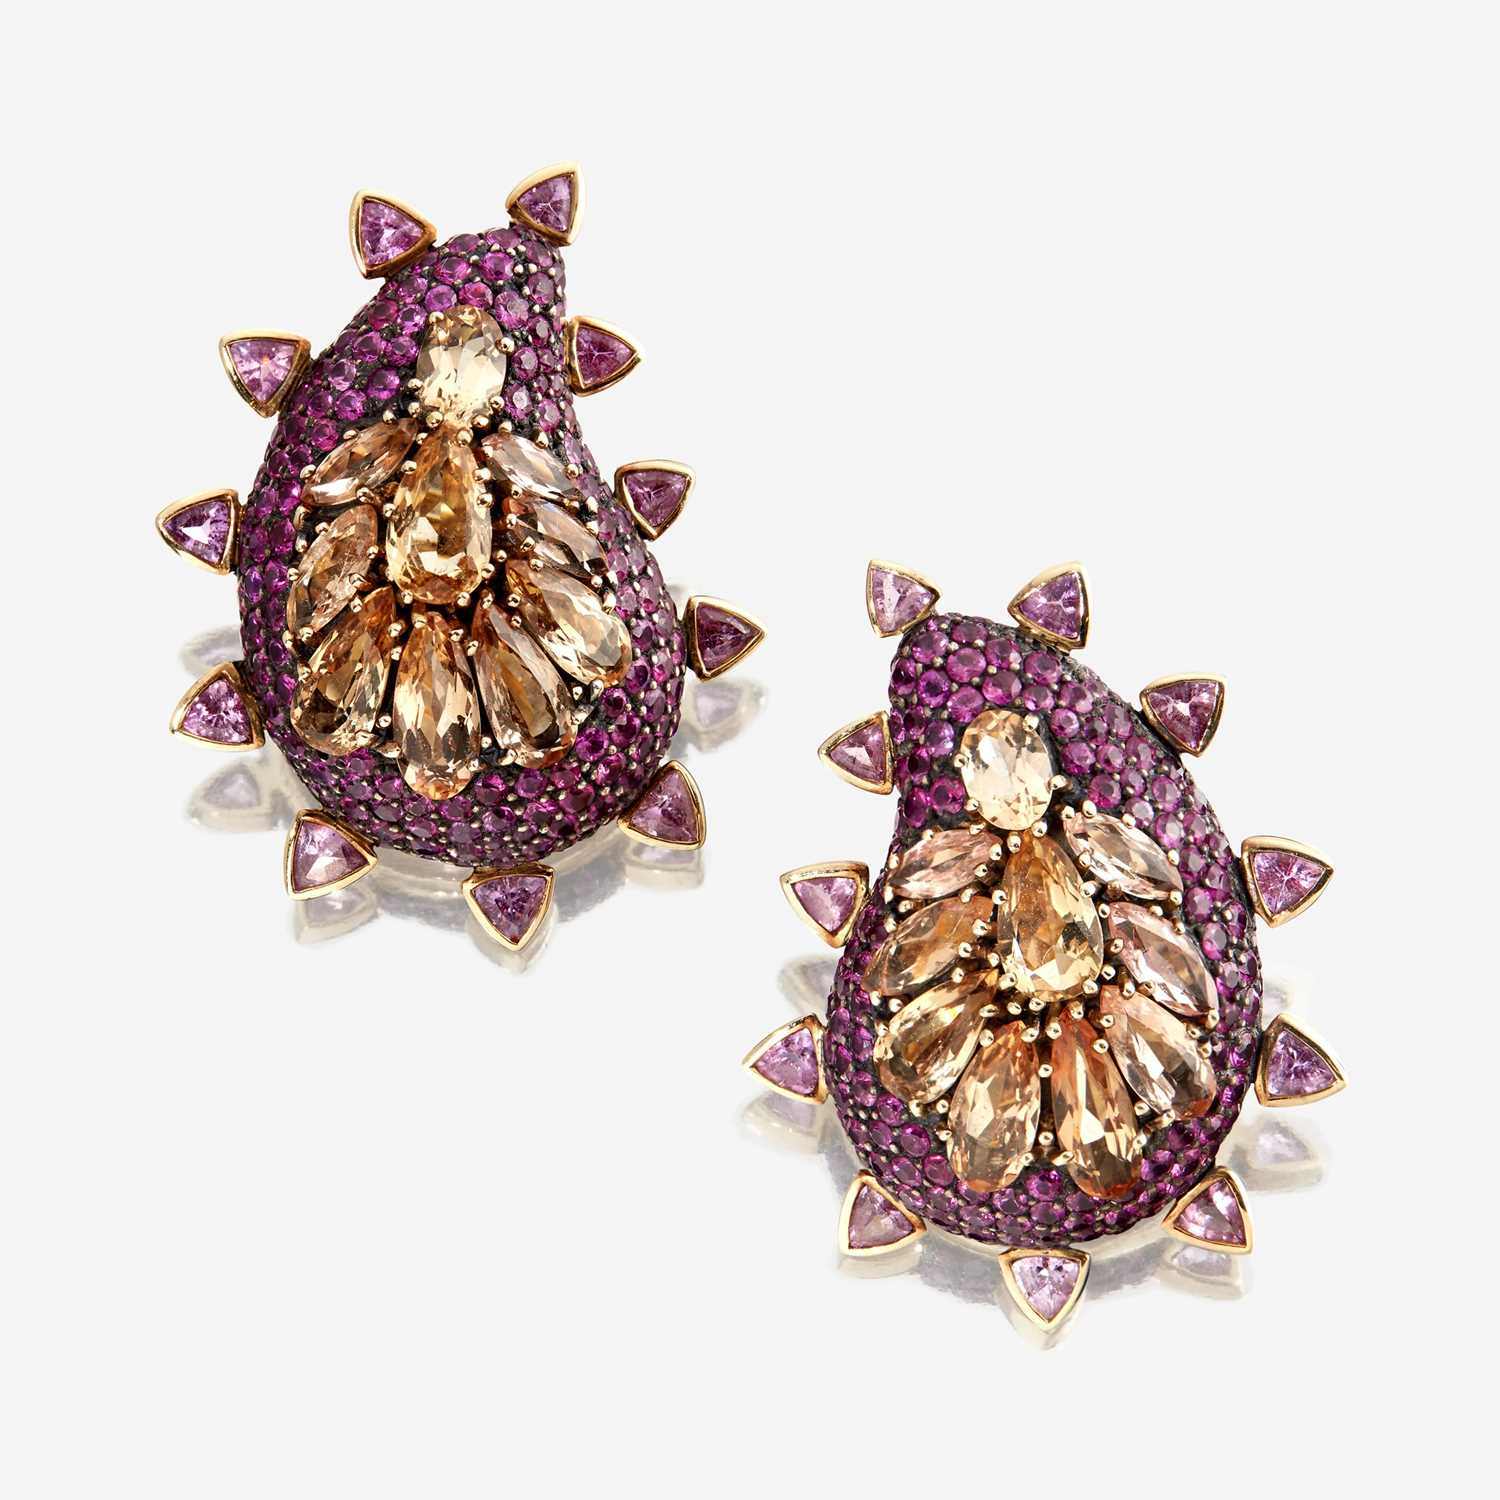 Lot 67 - A pair of precious topaz, ruby, and pink tourmaline earrings, Marilyn Cooperman